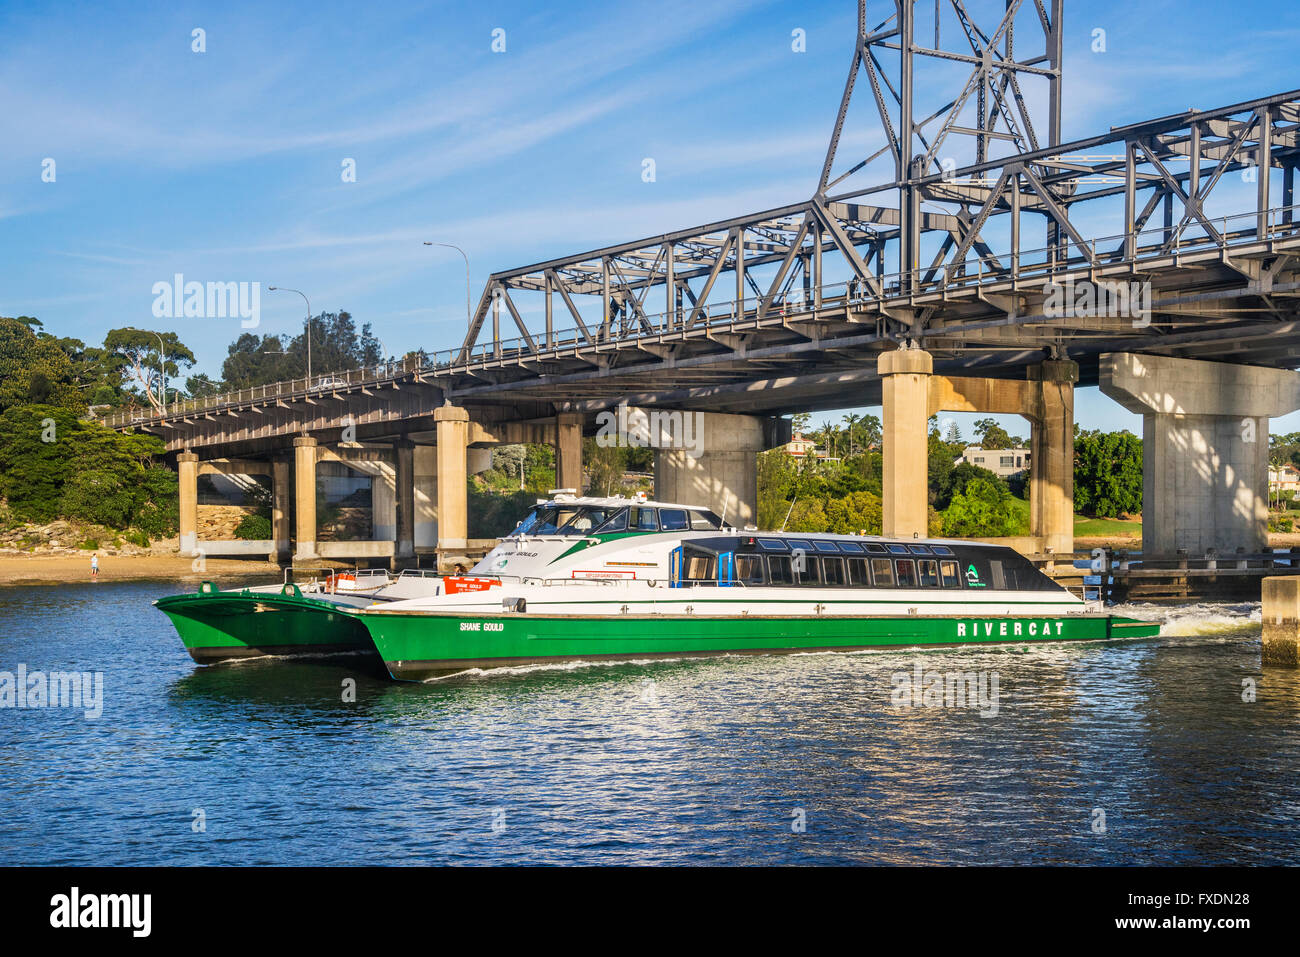 Australia, Sydney, Parramatta River, RiverrCat catamaran vessel 'Shane Gould' of passing under the Ryde - Stock Image